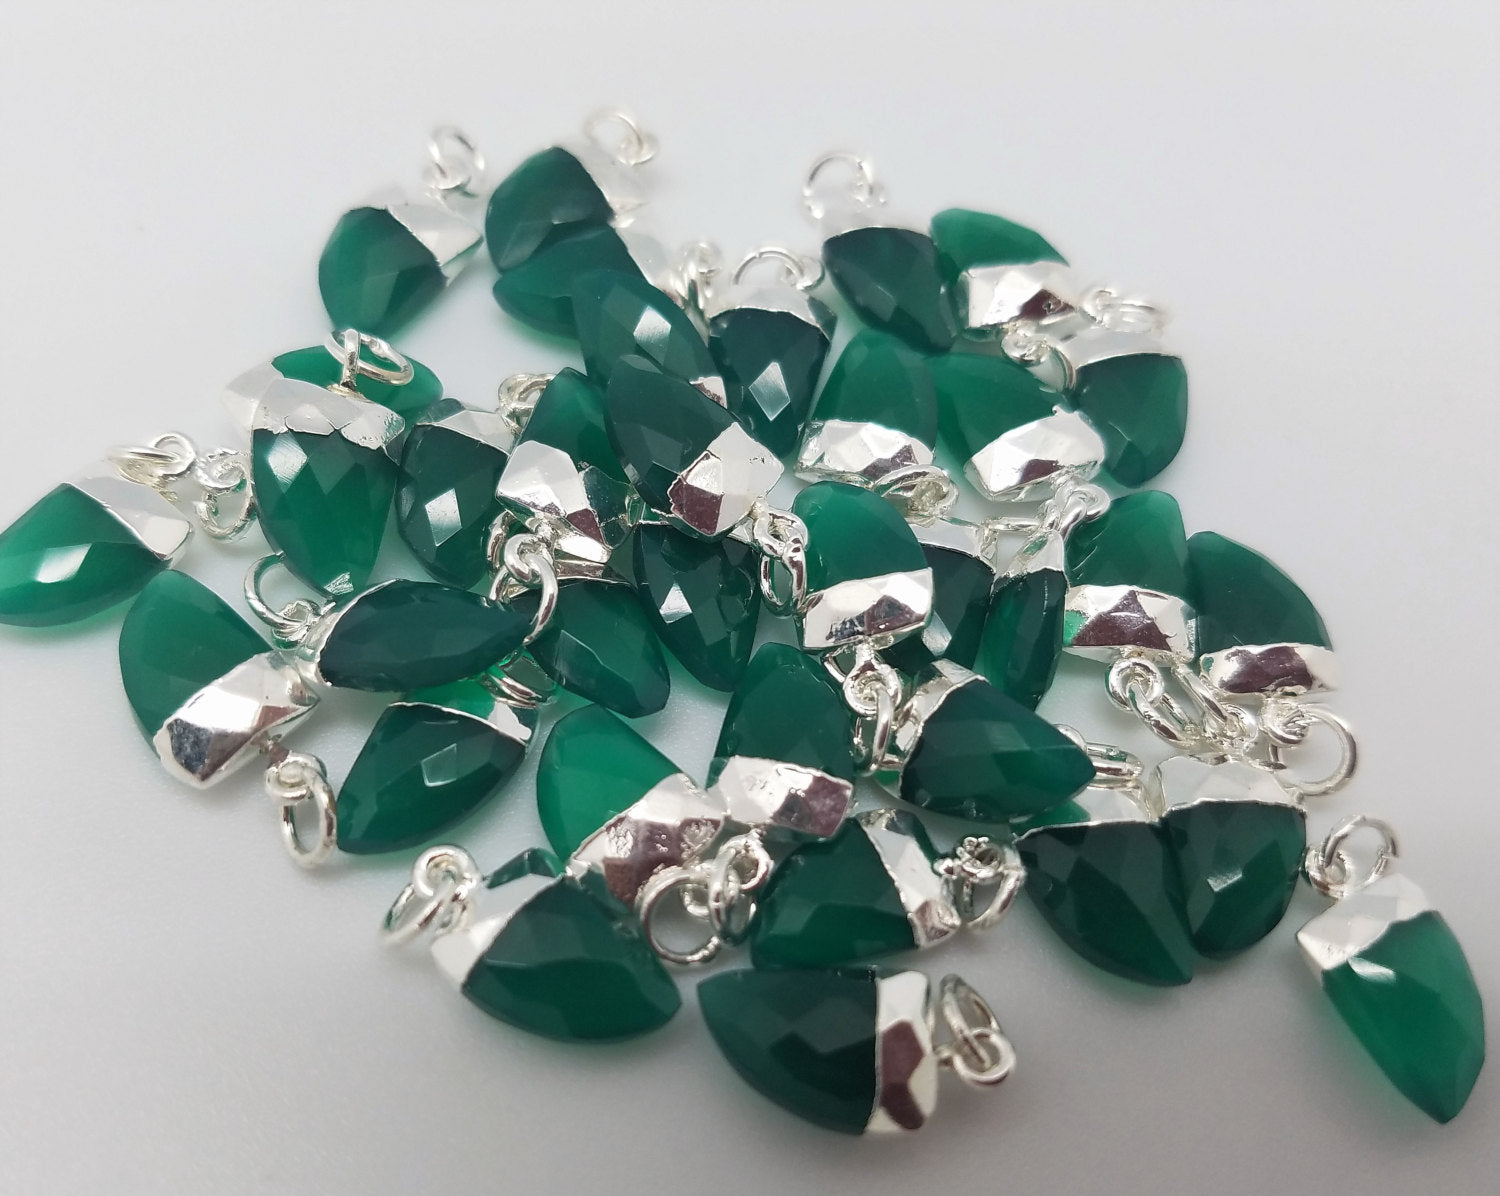 8 x 12mm Green Onyx Horn Pendants w/Silver Plating